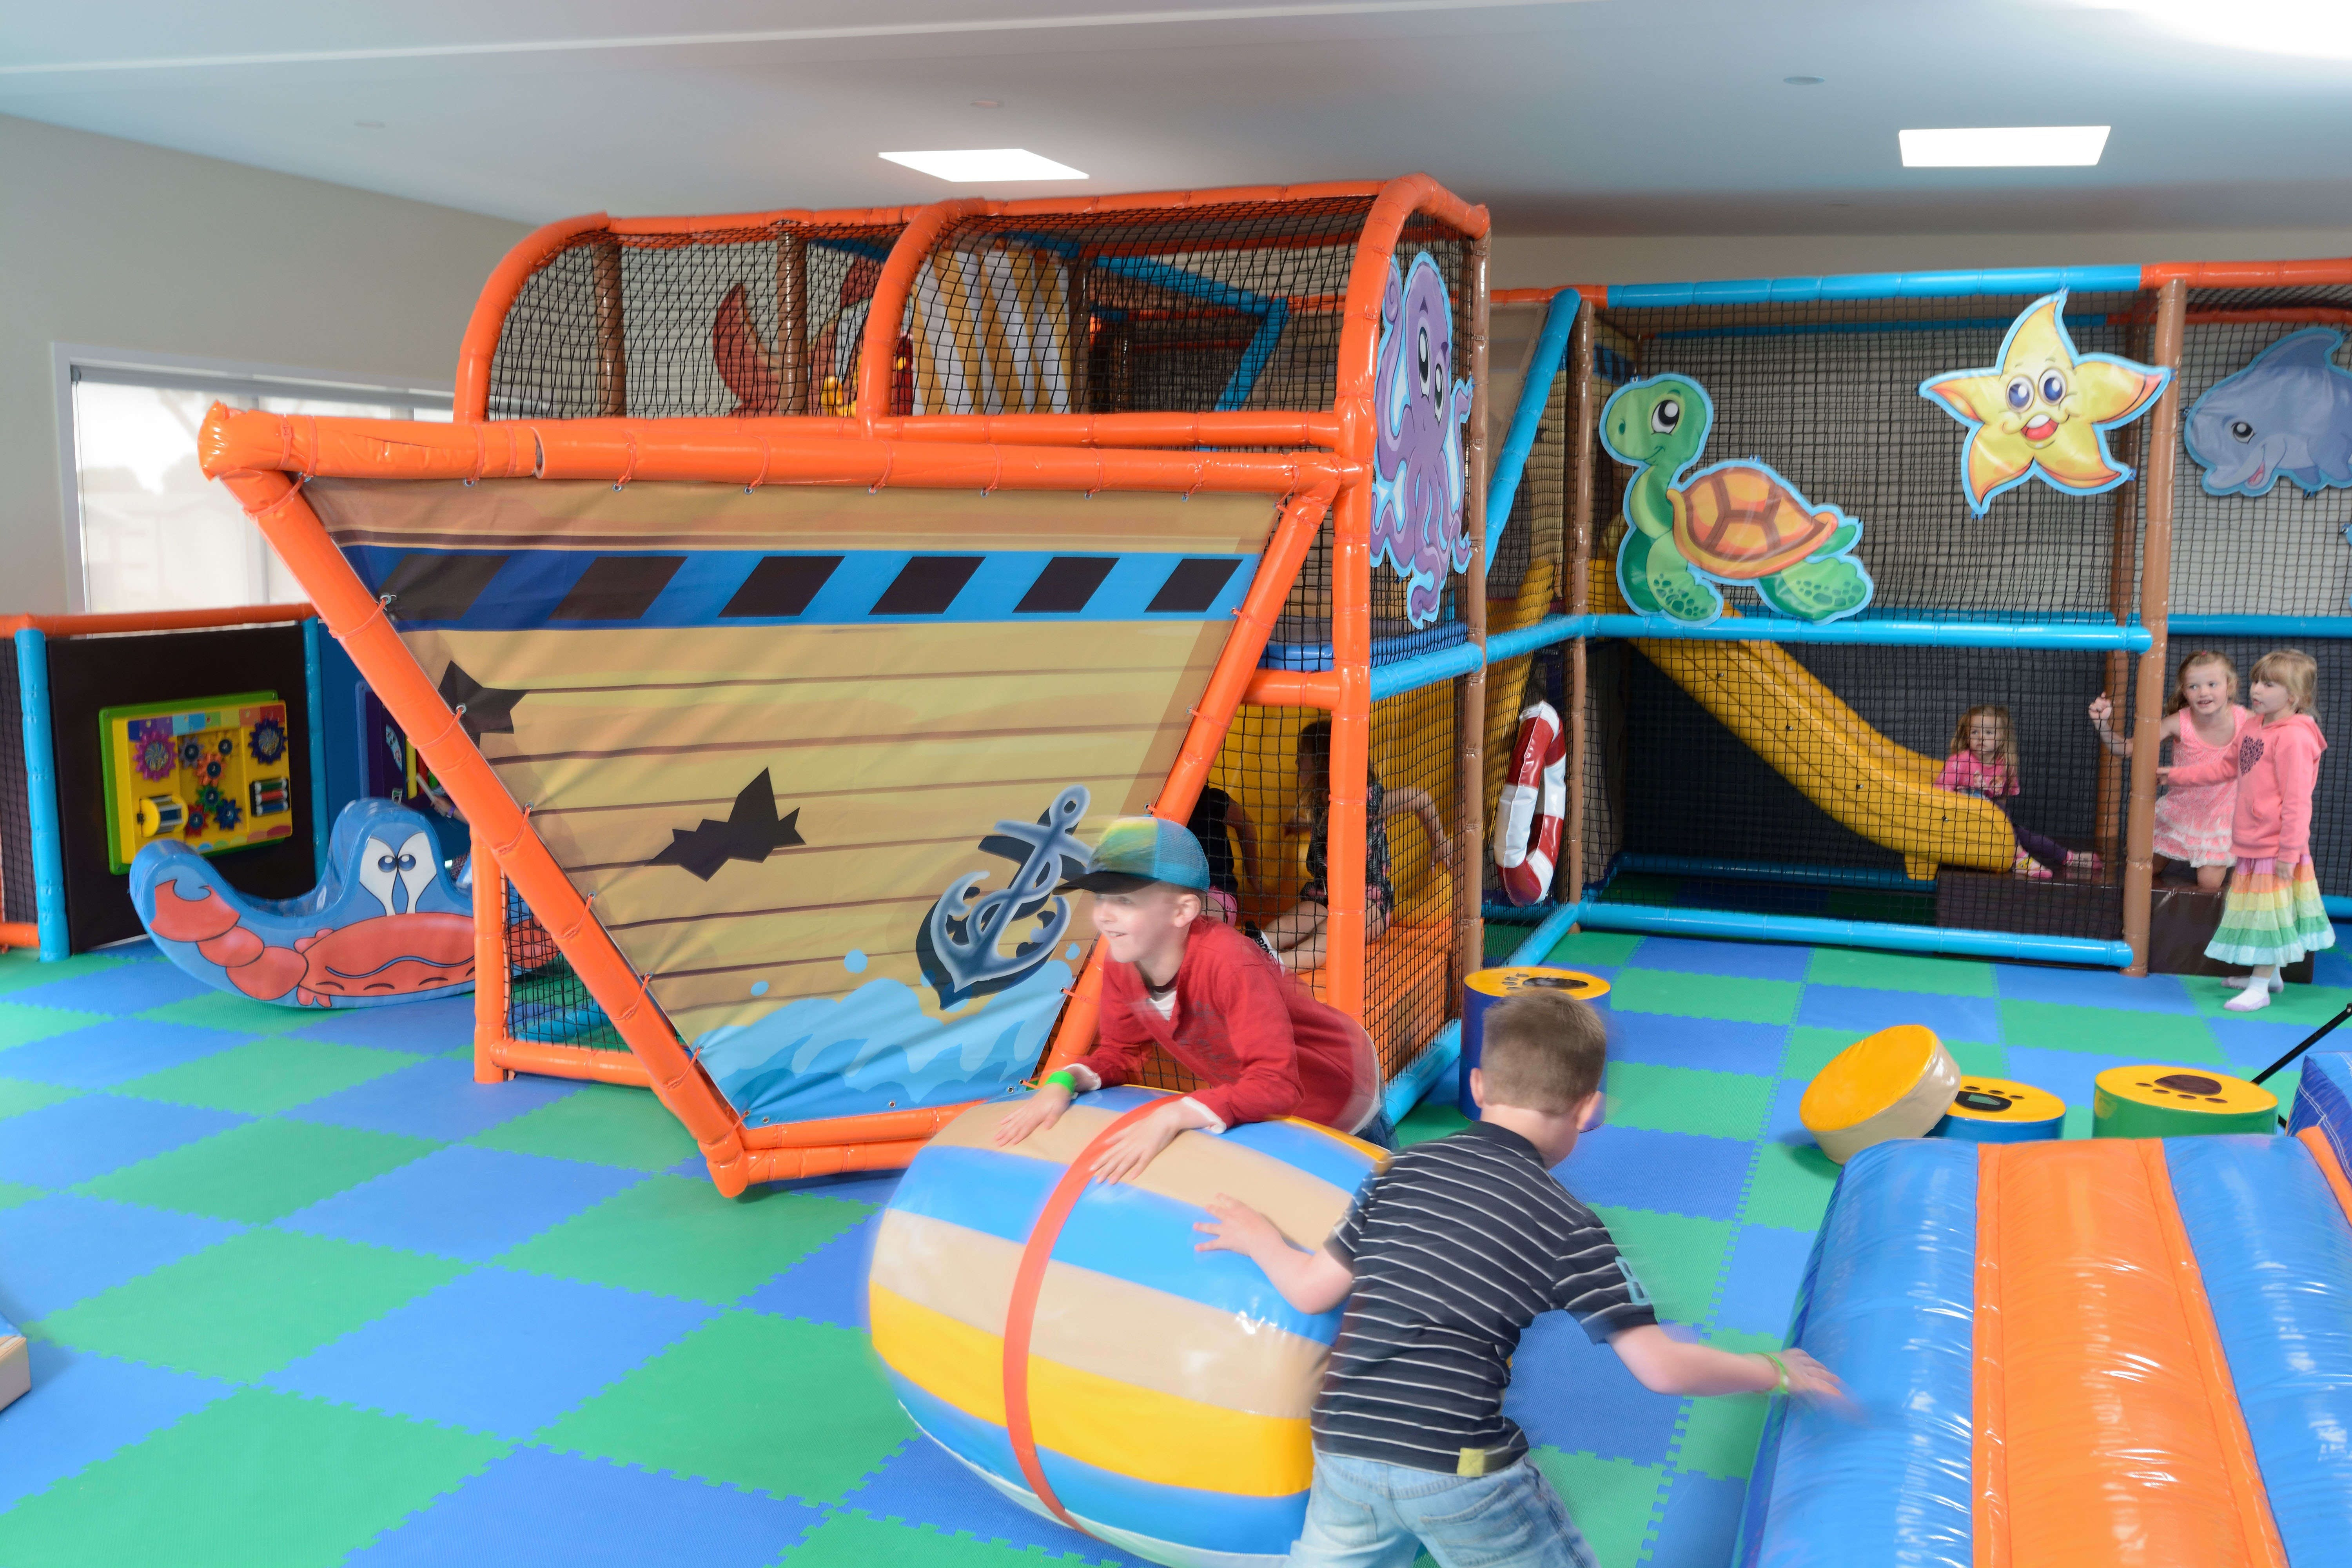 BIG4 Port Fairy Holiday Park Monkeys and Mermaids Indoor Play Centre - Attractions